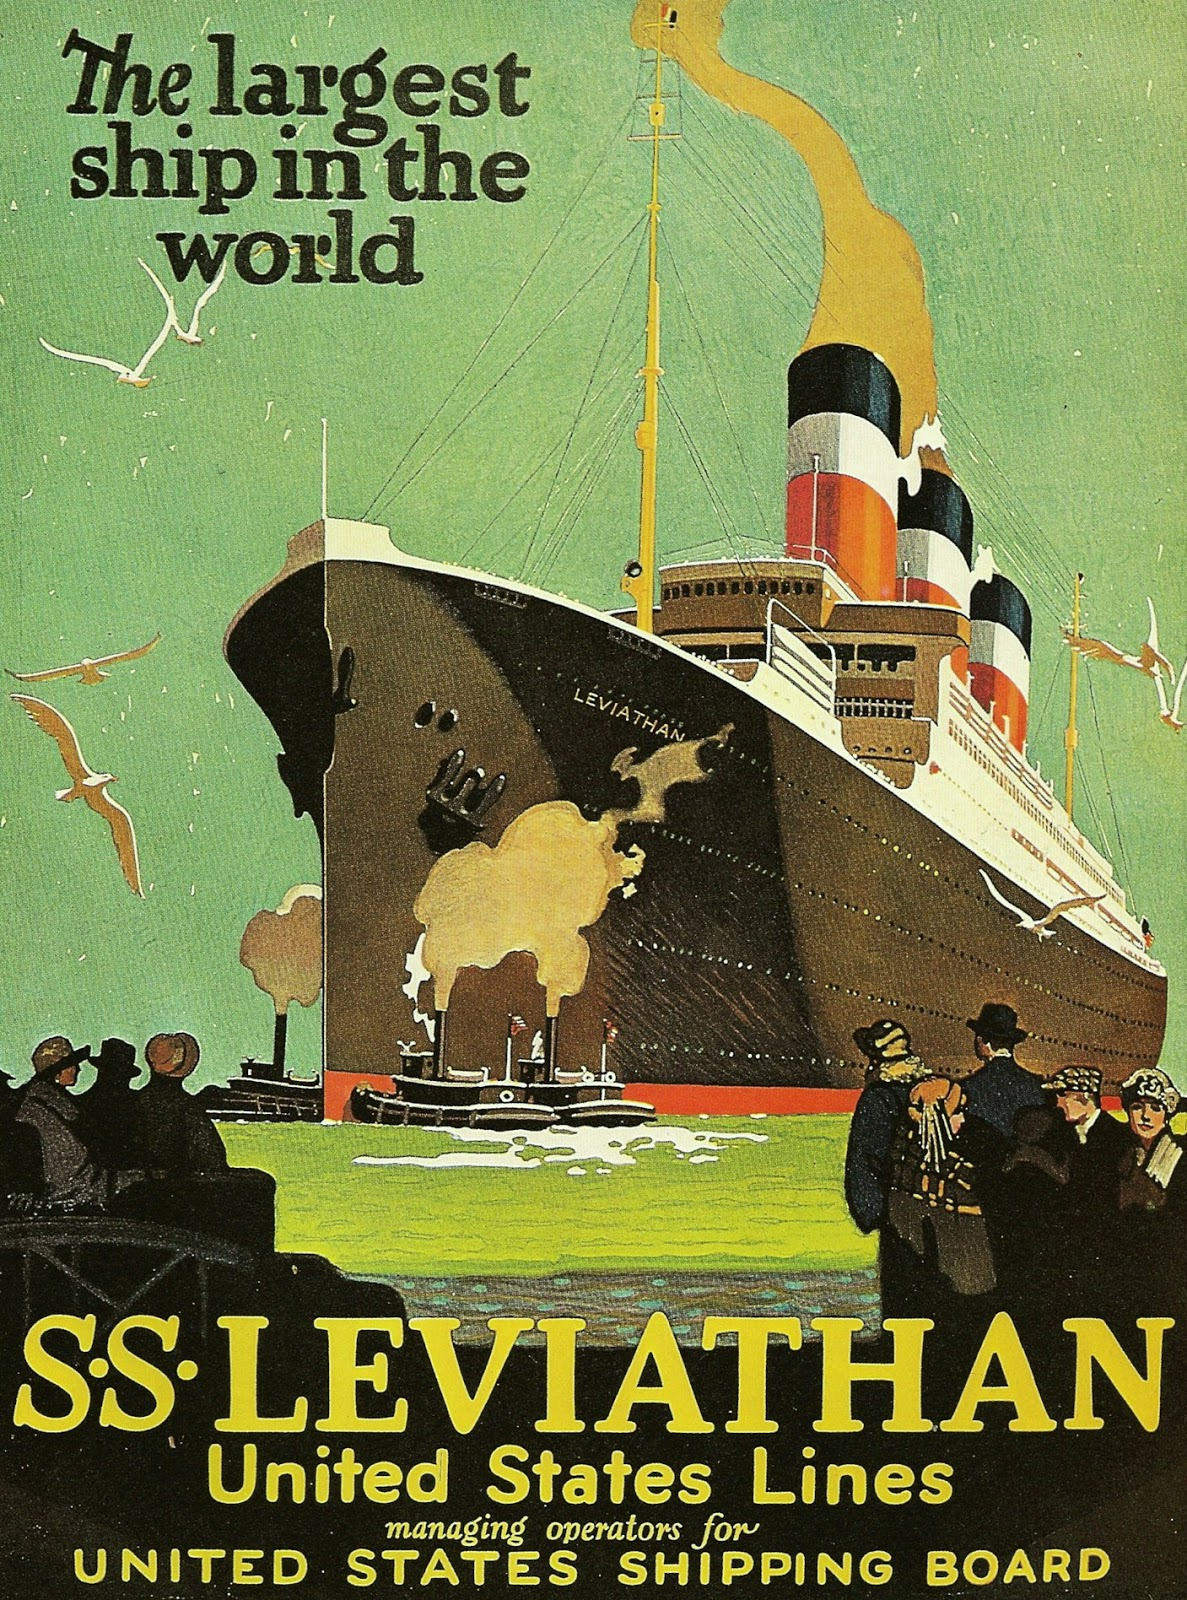 Cruises From Southampton >> ART & ARTISTS: Maritime Posters - part 5